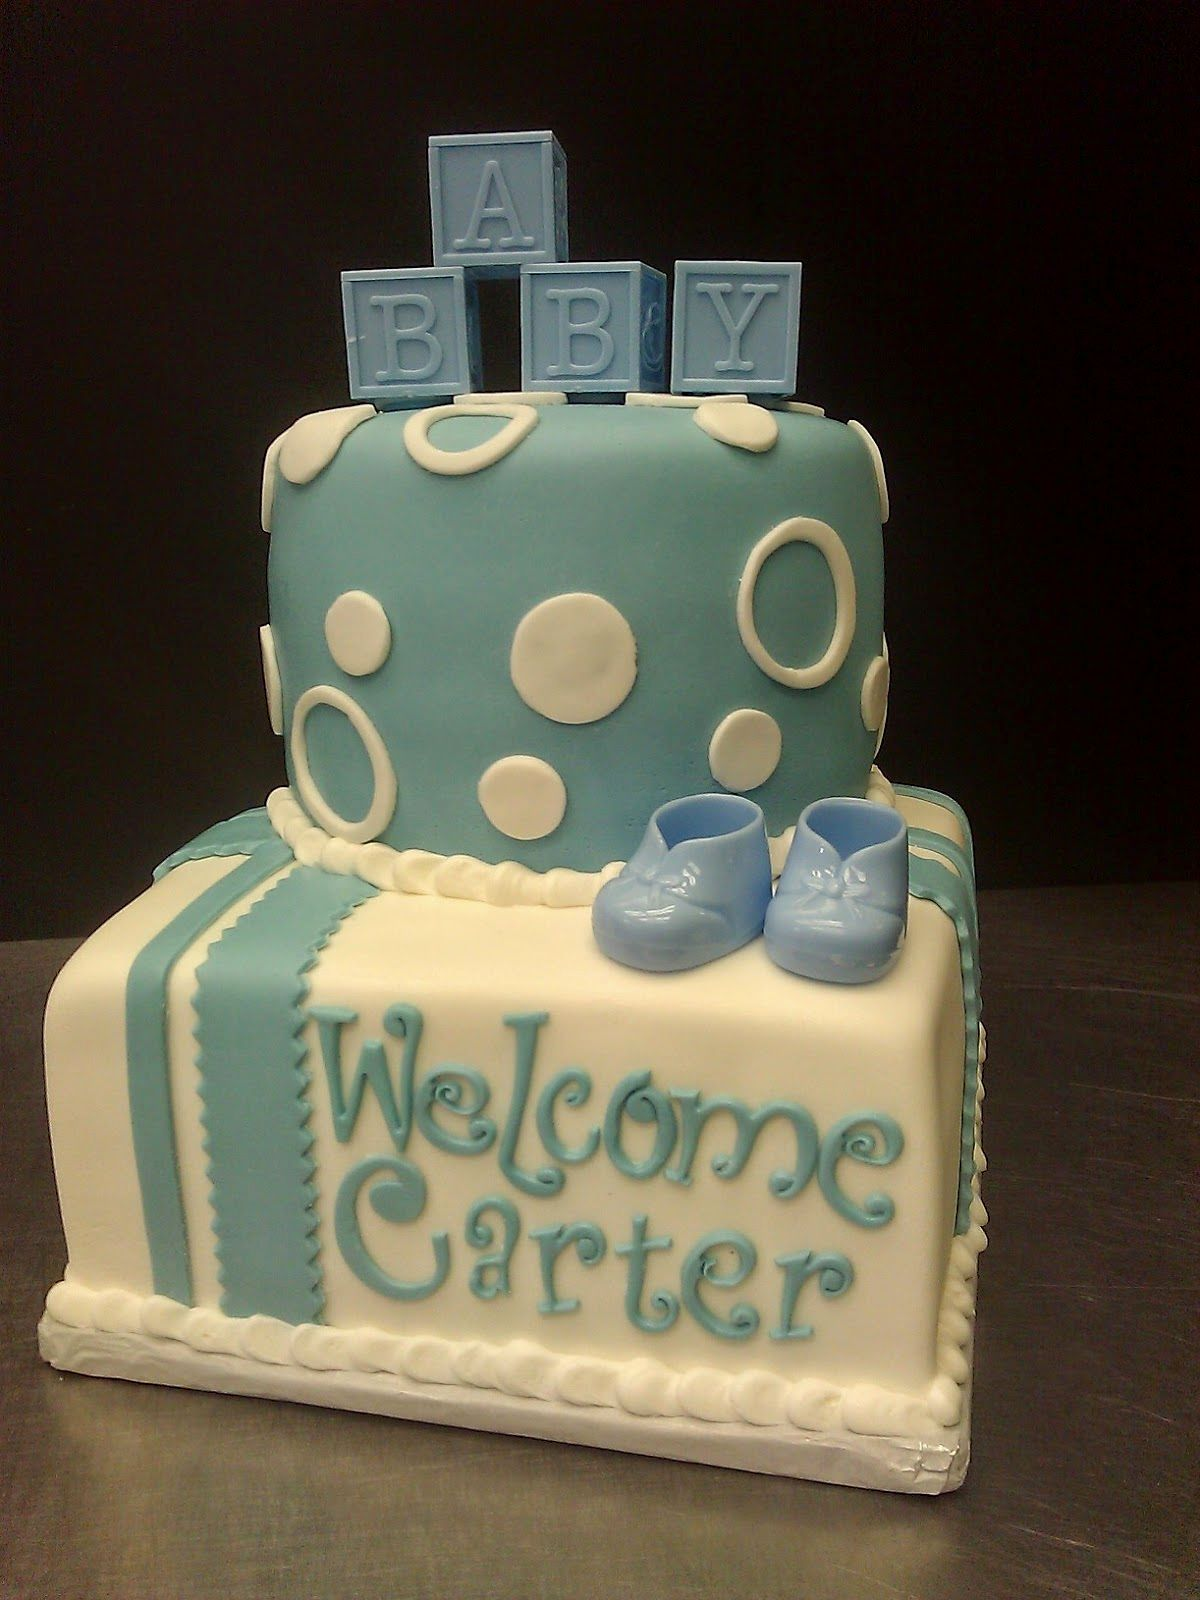 Baby Shower Cakes without Fondant